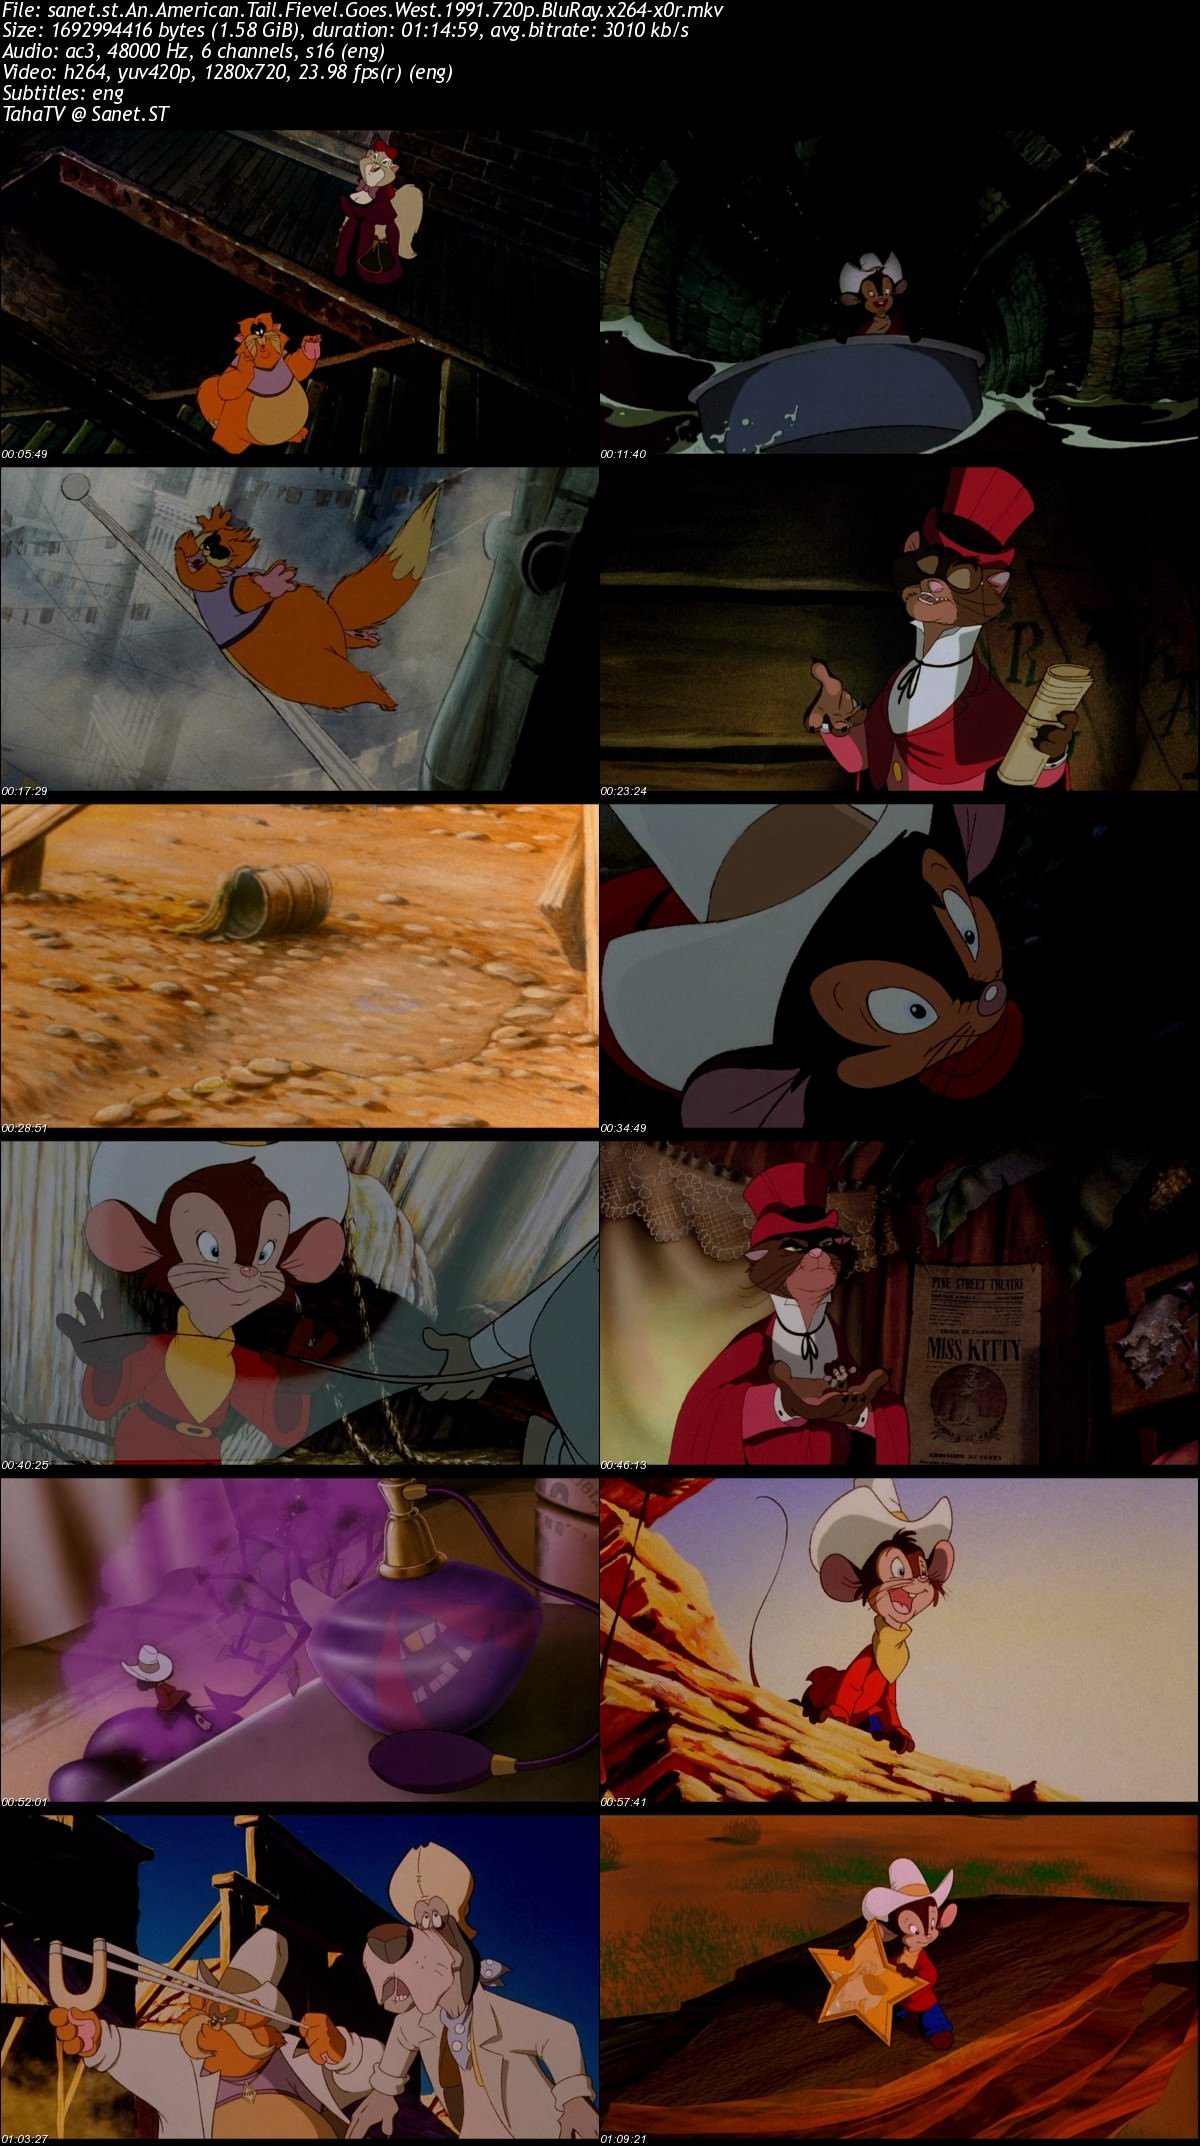 Download An American Tail Fievel Goes West 1991 720p Bluray X264 X0r